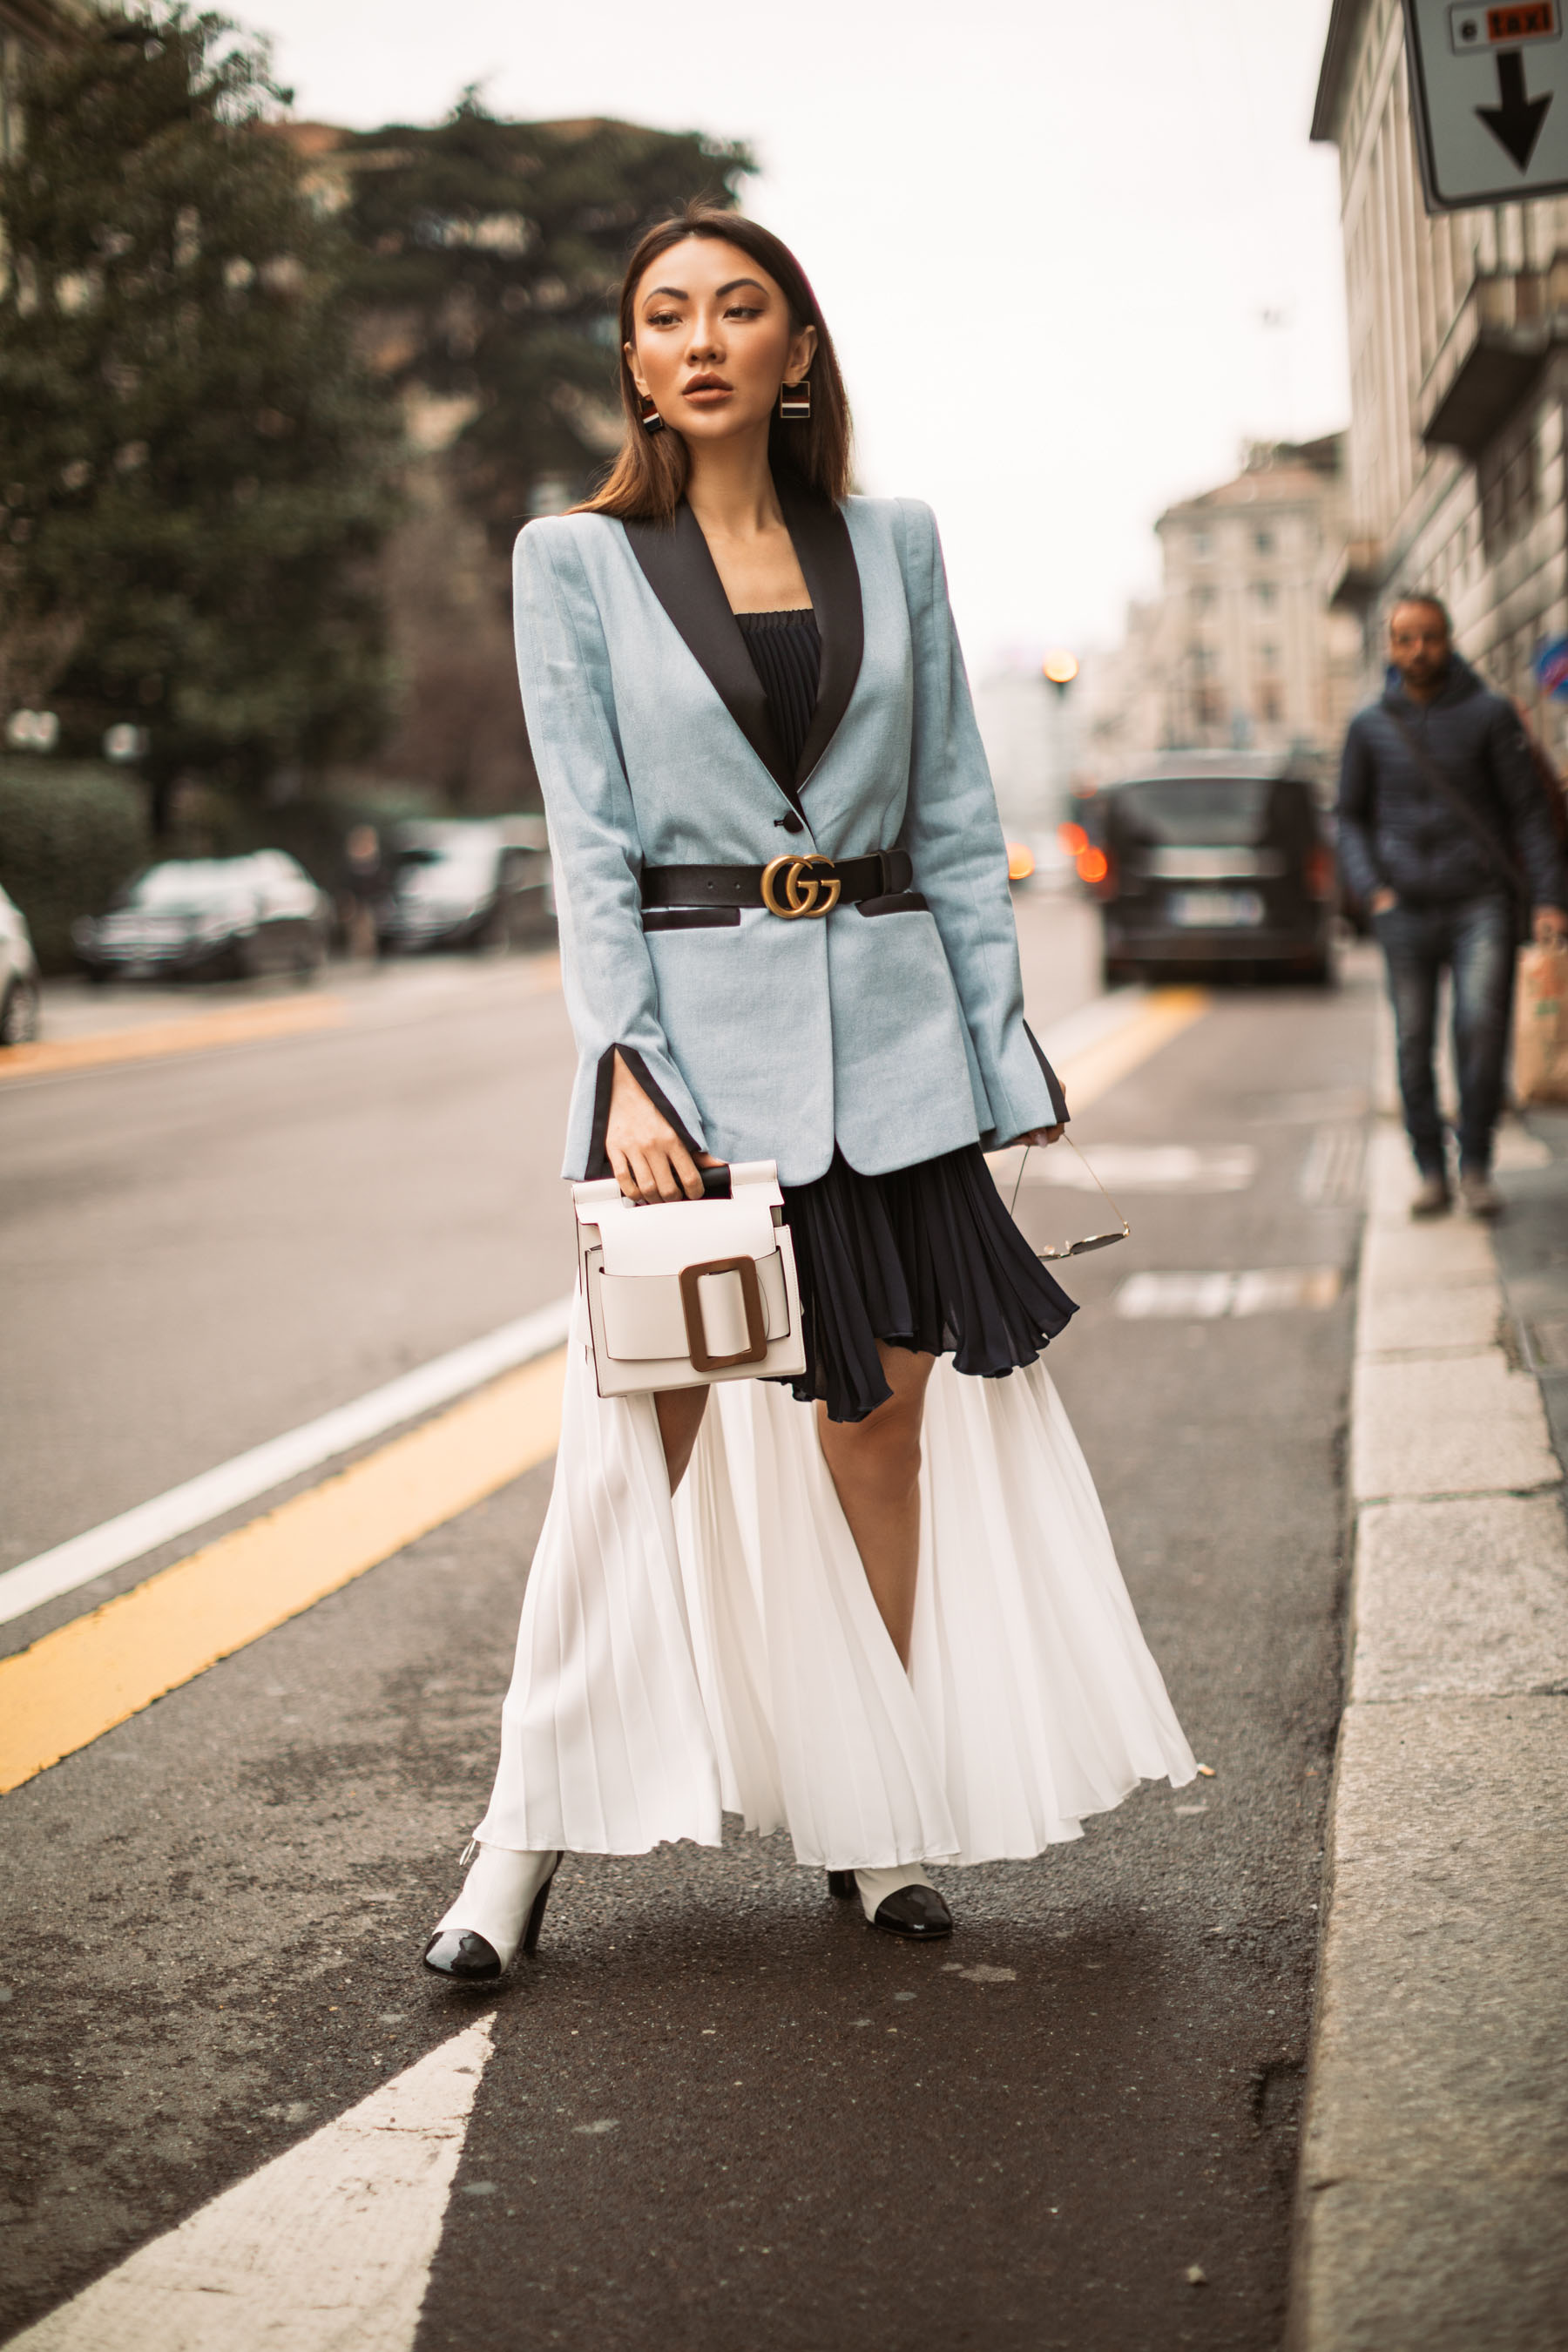 Milan Fashion Week - Jessica Wang Street Style, Blue Tuxedo Jacket, Gucci Belt Outfit, MFW Street Style // Notjessfashion.com